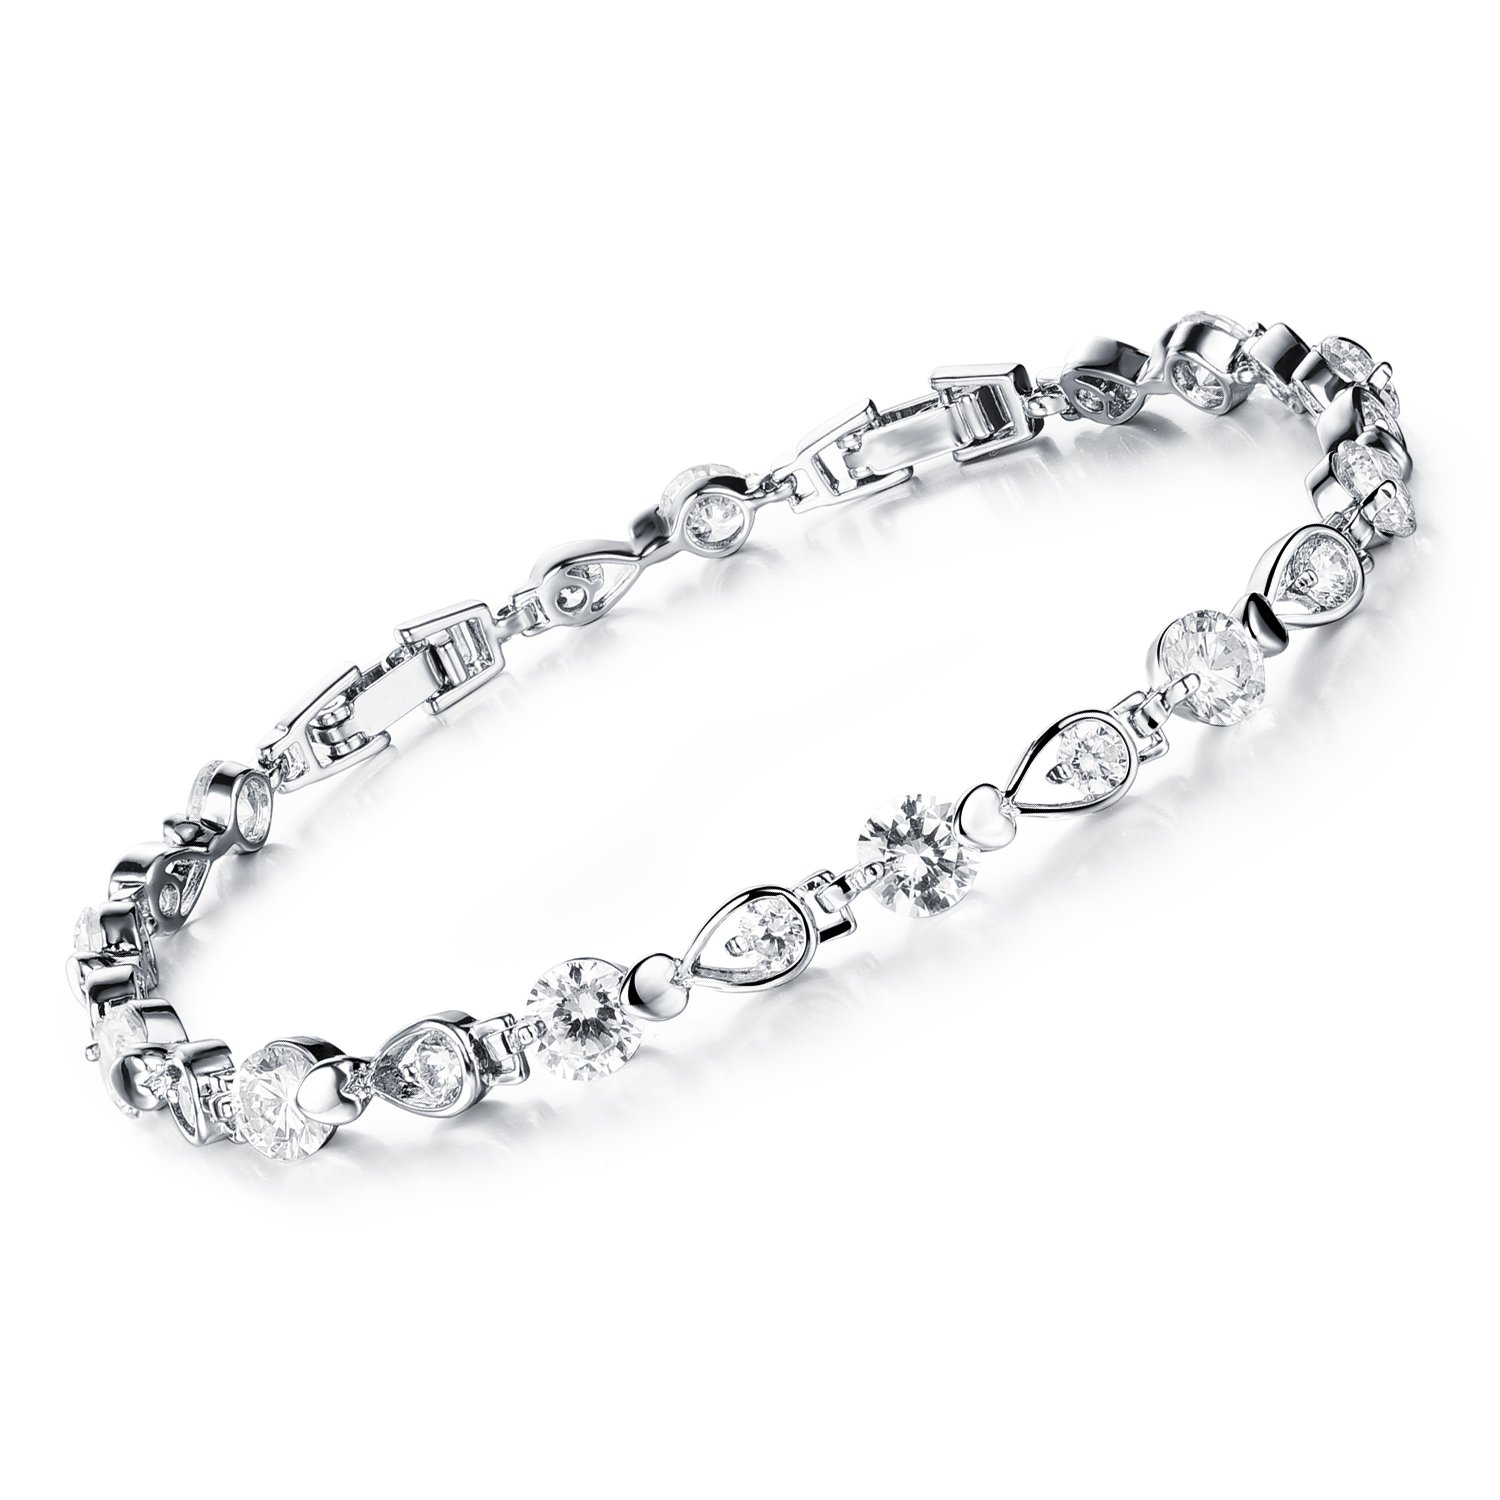 Stainless Steel Swarovski Elements Cubic Zirconia Bracelet with Extended Chain for Women 6.8+1.2''